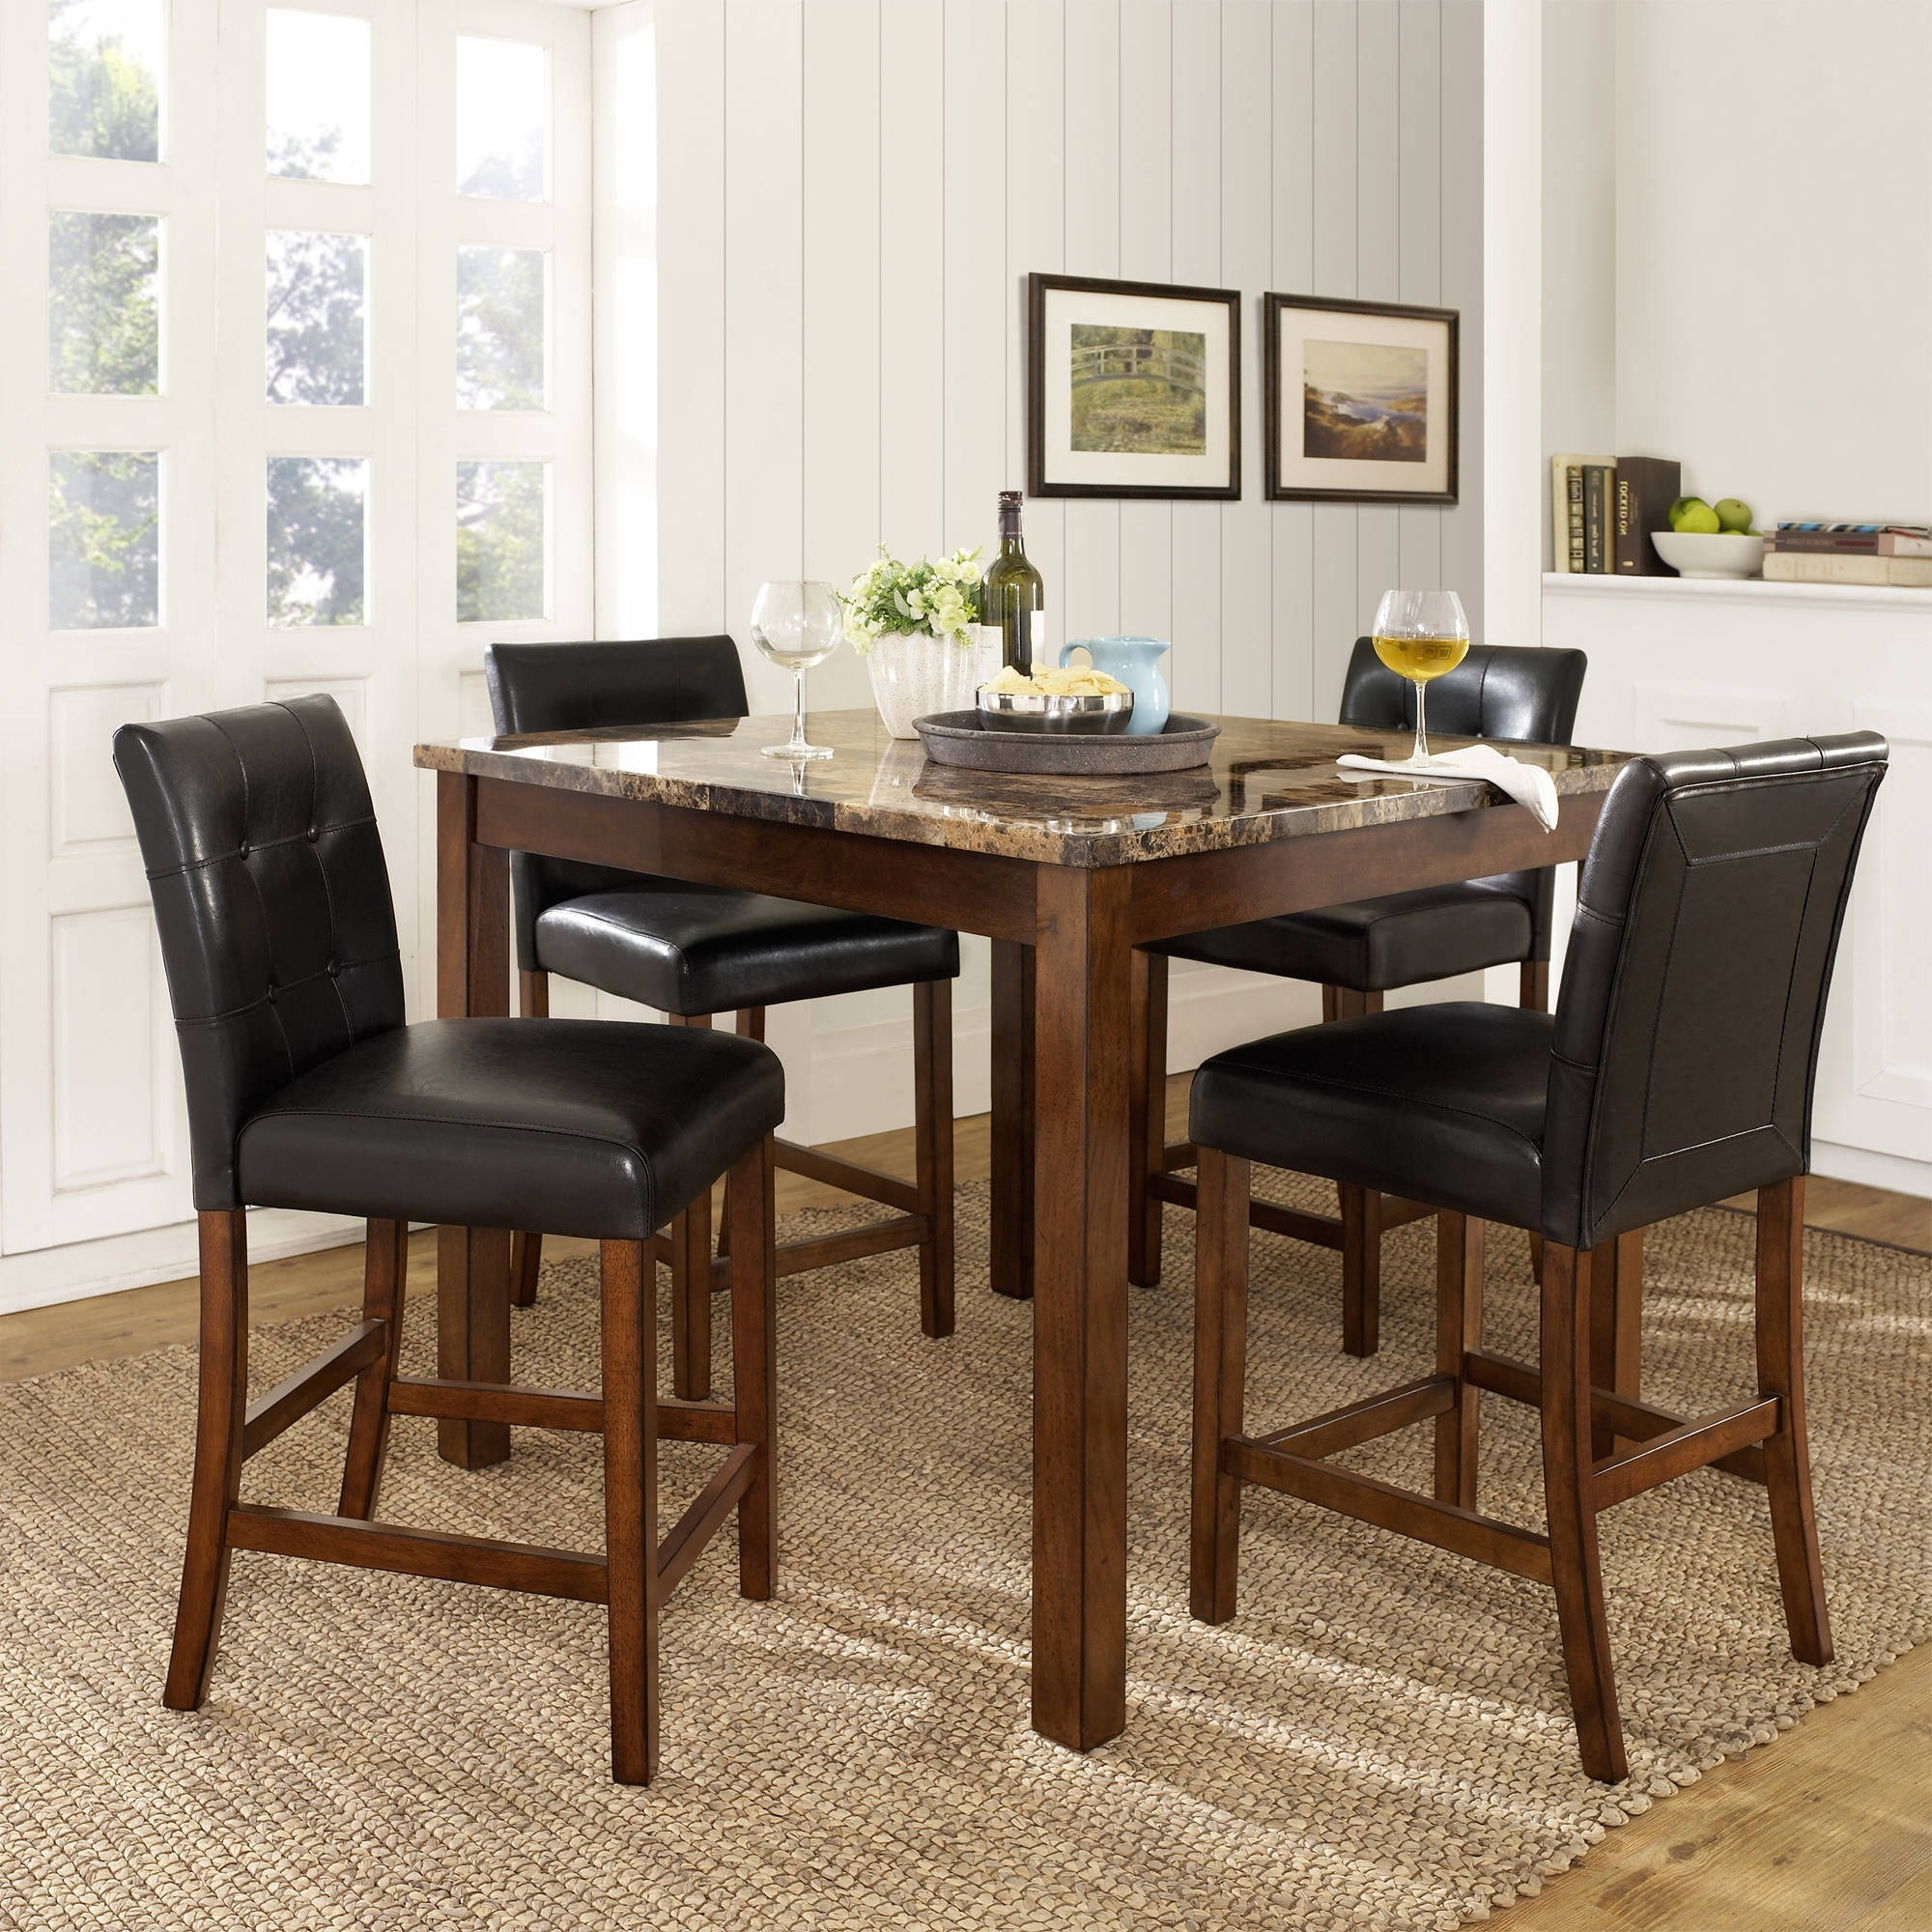 Famous Mainstays 5 Piece Glass Top Metal Dining Set – Walmart For Cheap Dining Room Chairs (View 6 of 25)